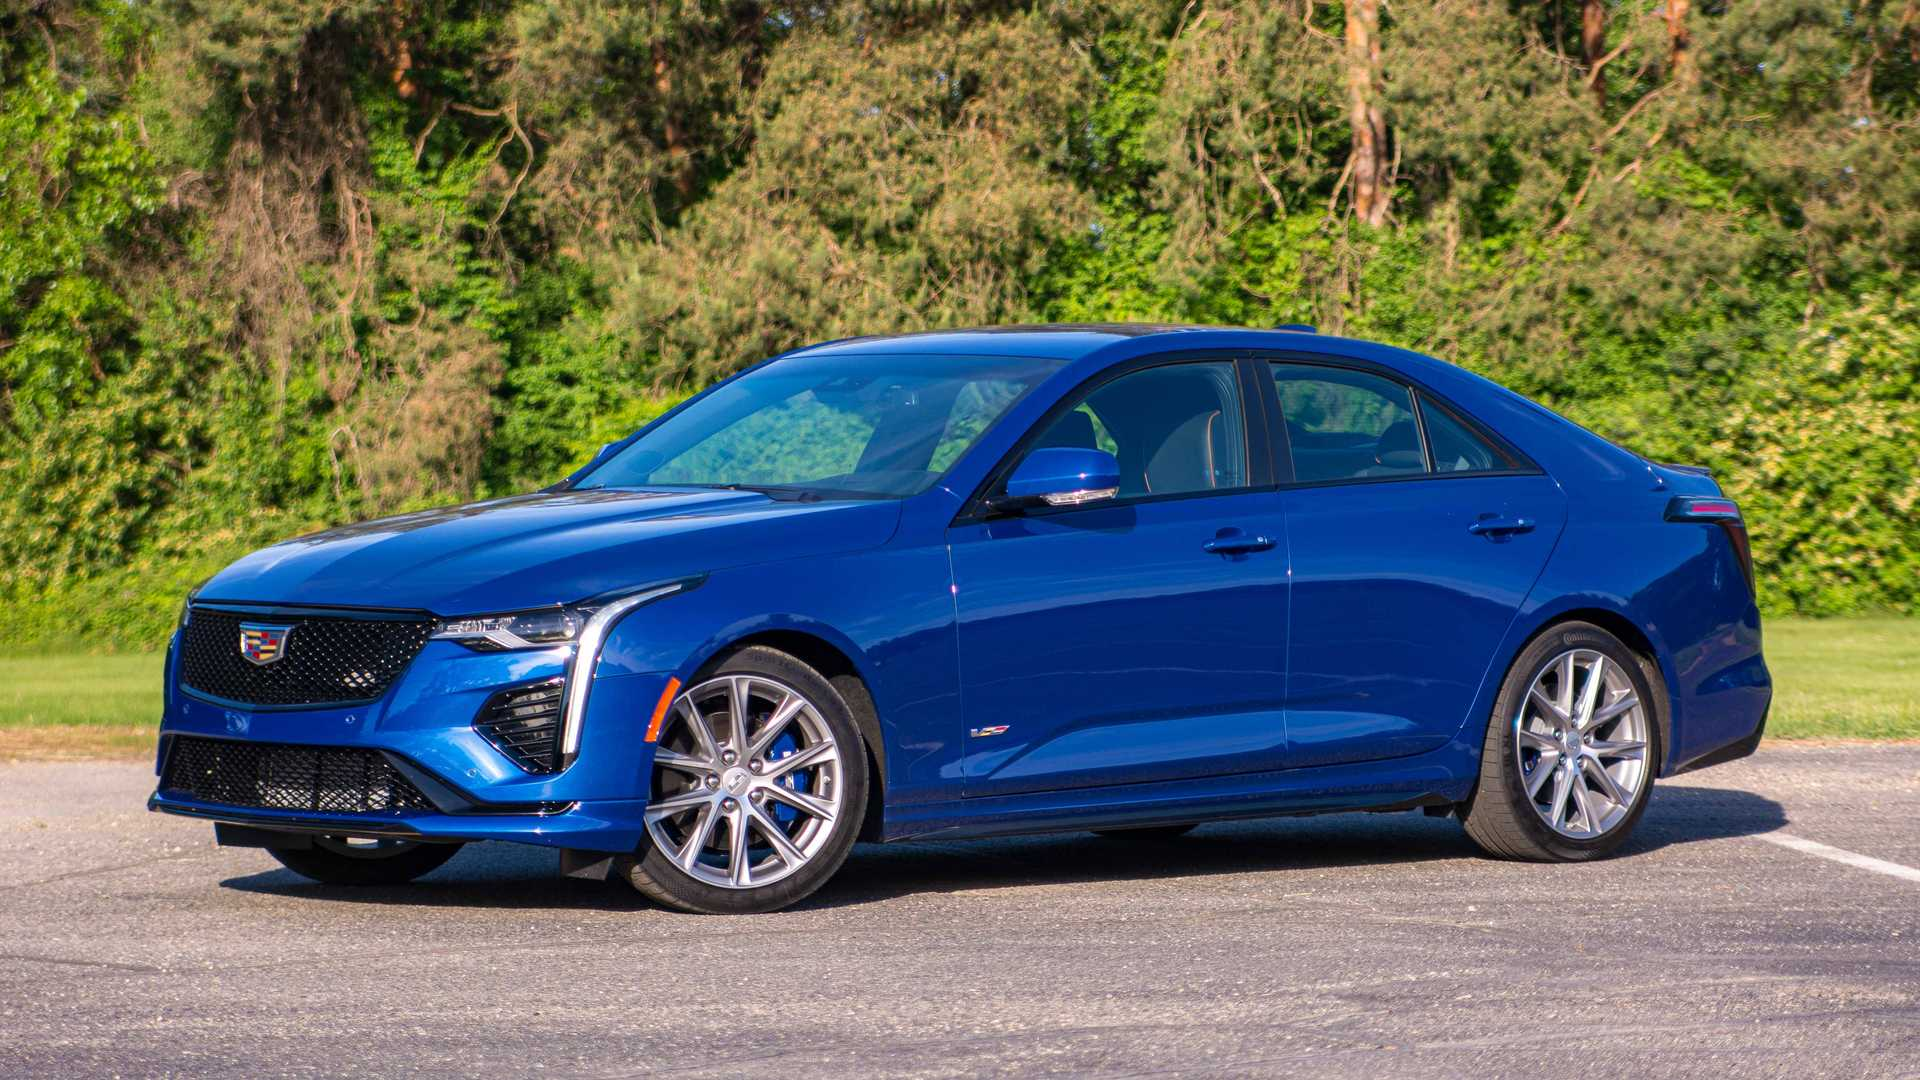 2020 cadillac ct4-v first drive review: please, go back to